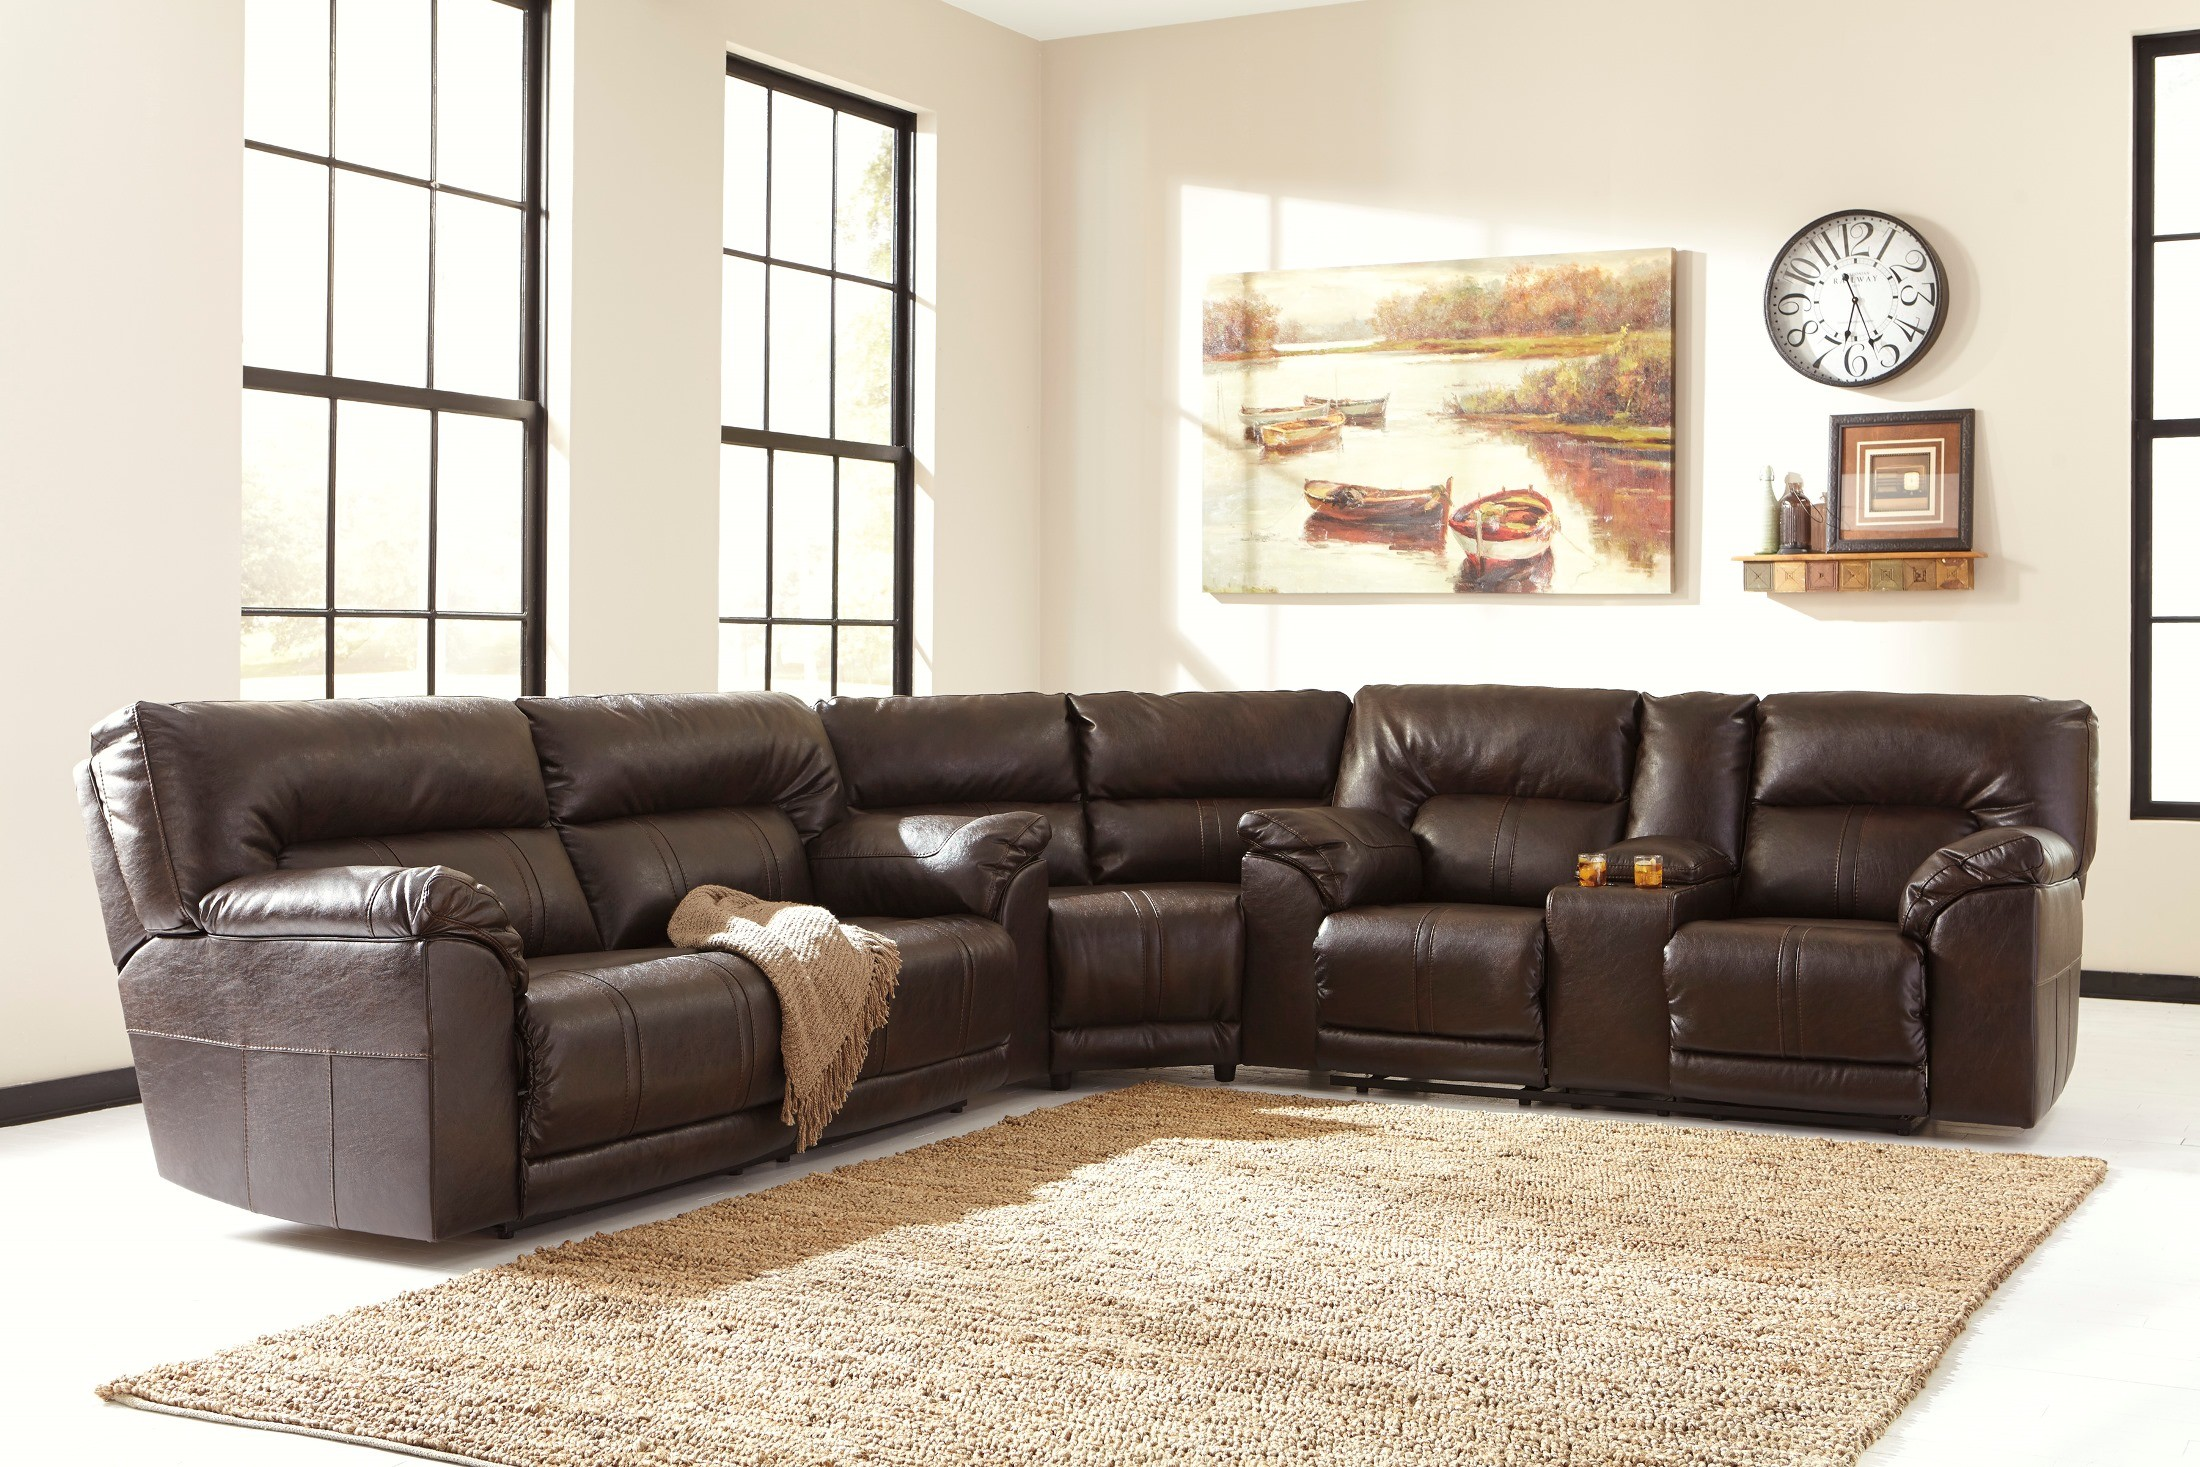 Barrettsville DuraBlend Chocolate Reclining Sectional From